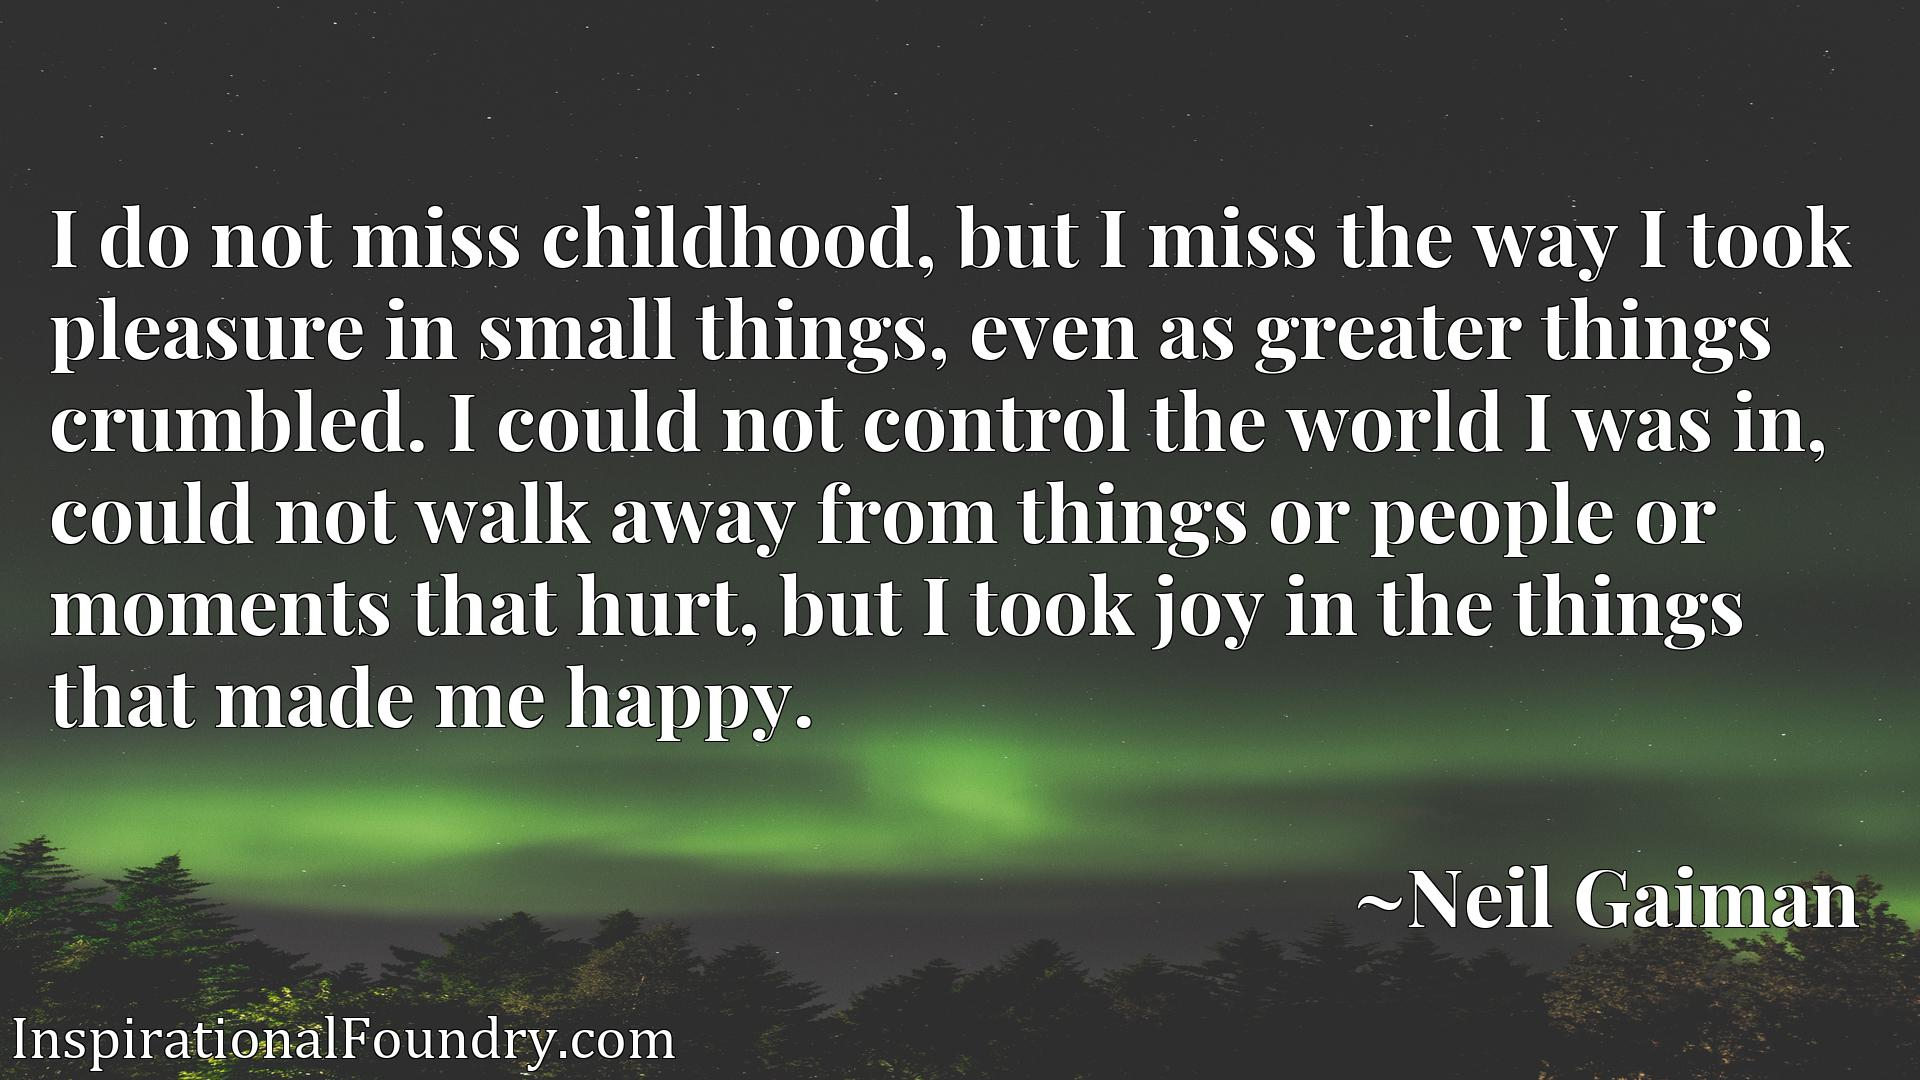 I do not miss childhood, but I miss the way I took pleasure in small things, even as greater things crumbled. I could not control the world I was in, could not walk away from things or people or moments that hurt, but I took joy in the things that made me happy.